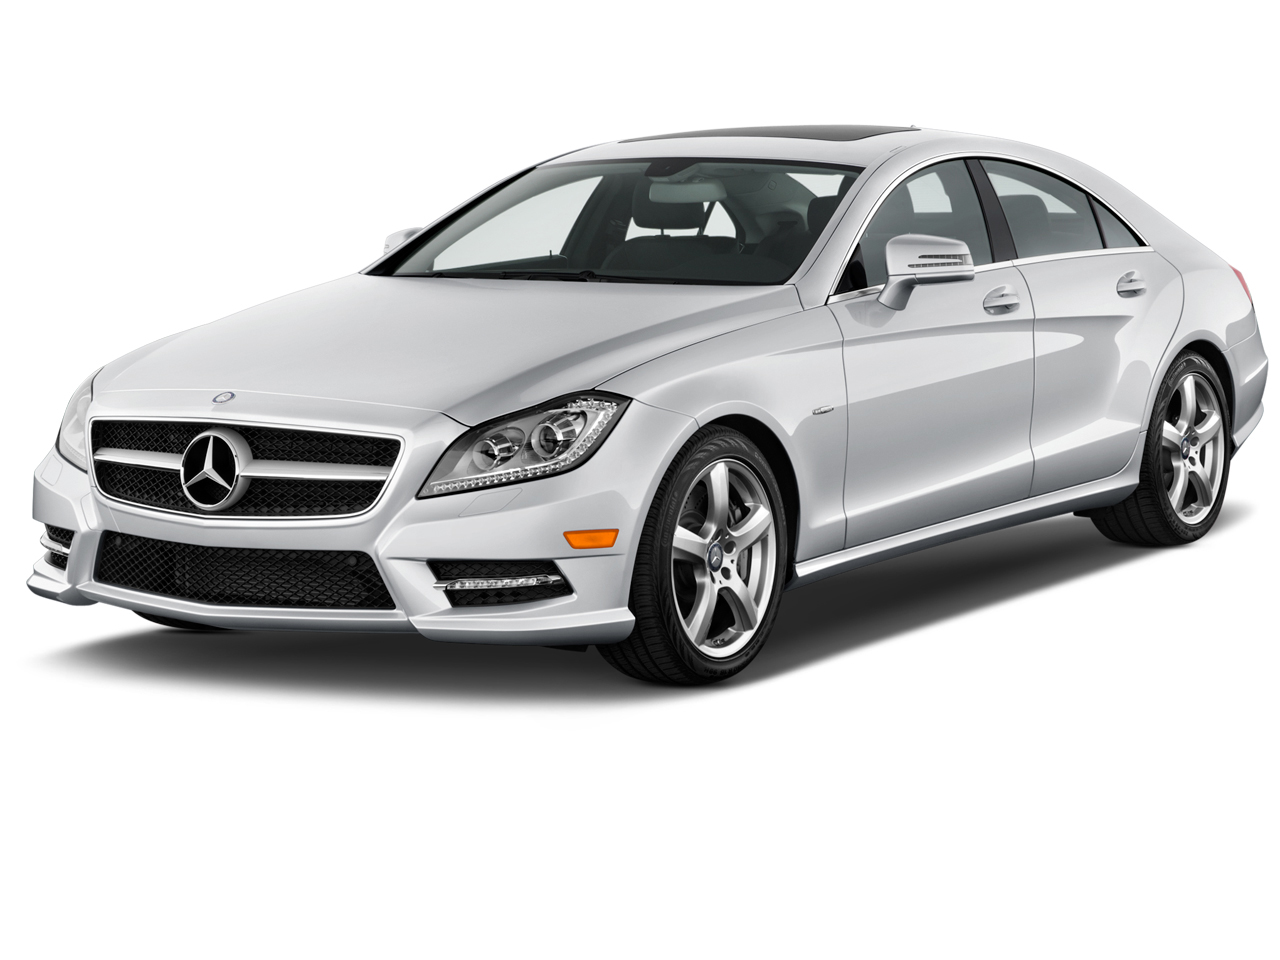 2012 mercedes benz cls550 models recalled for hood latch issue for Mercedes benz 4 door